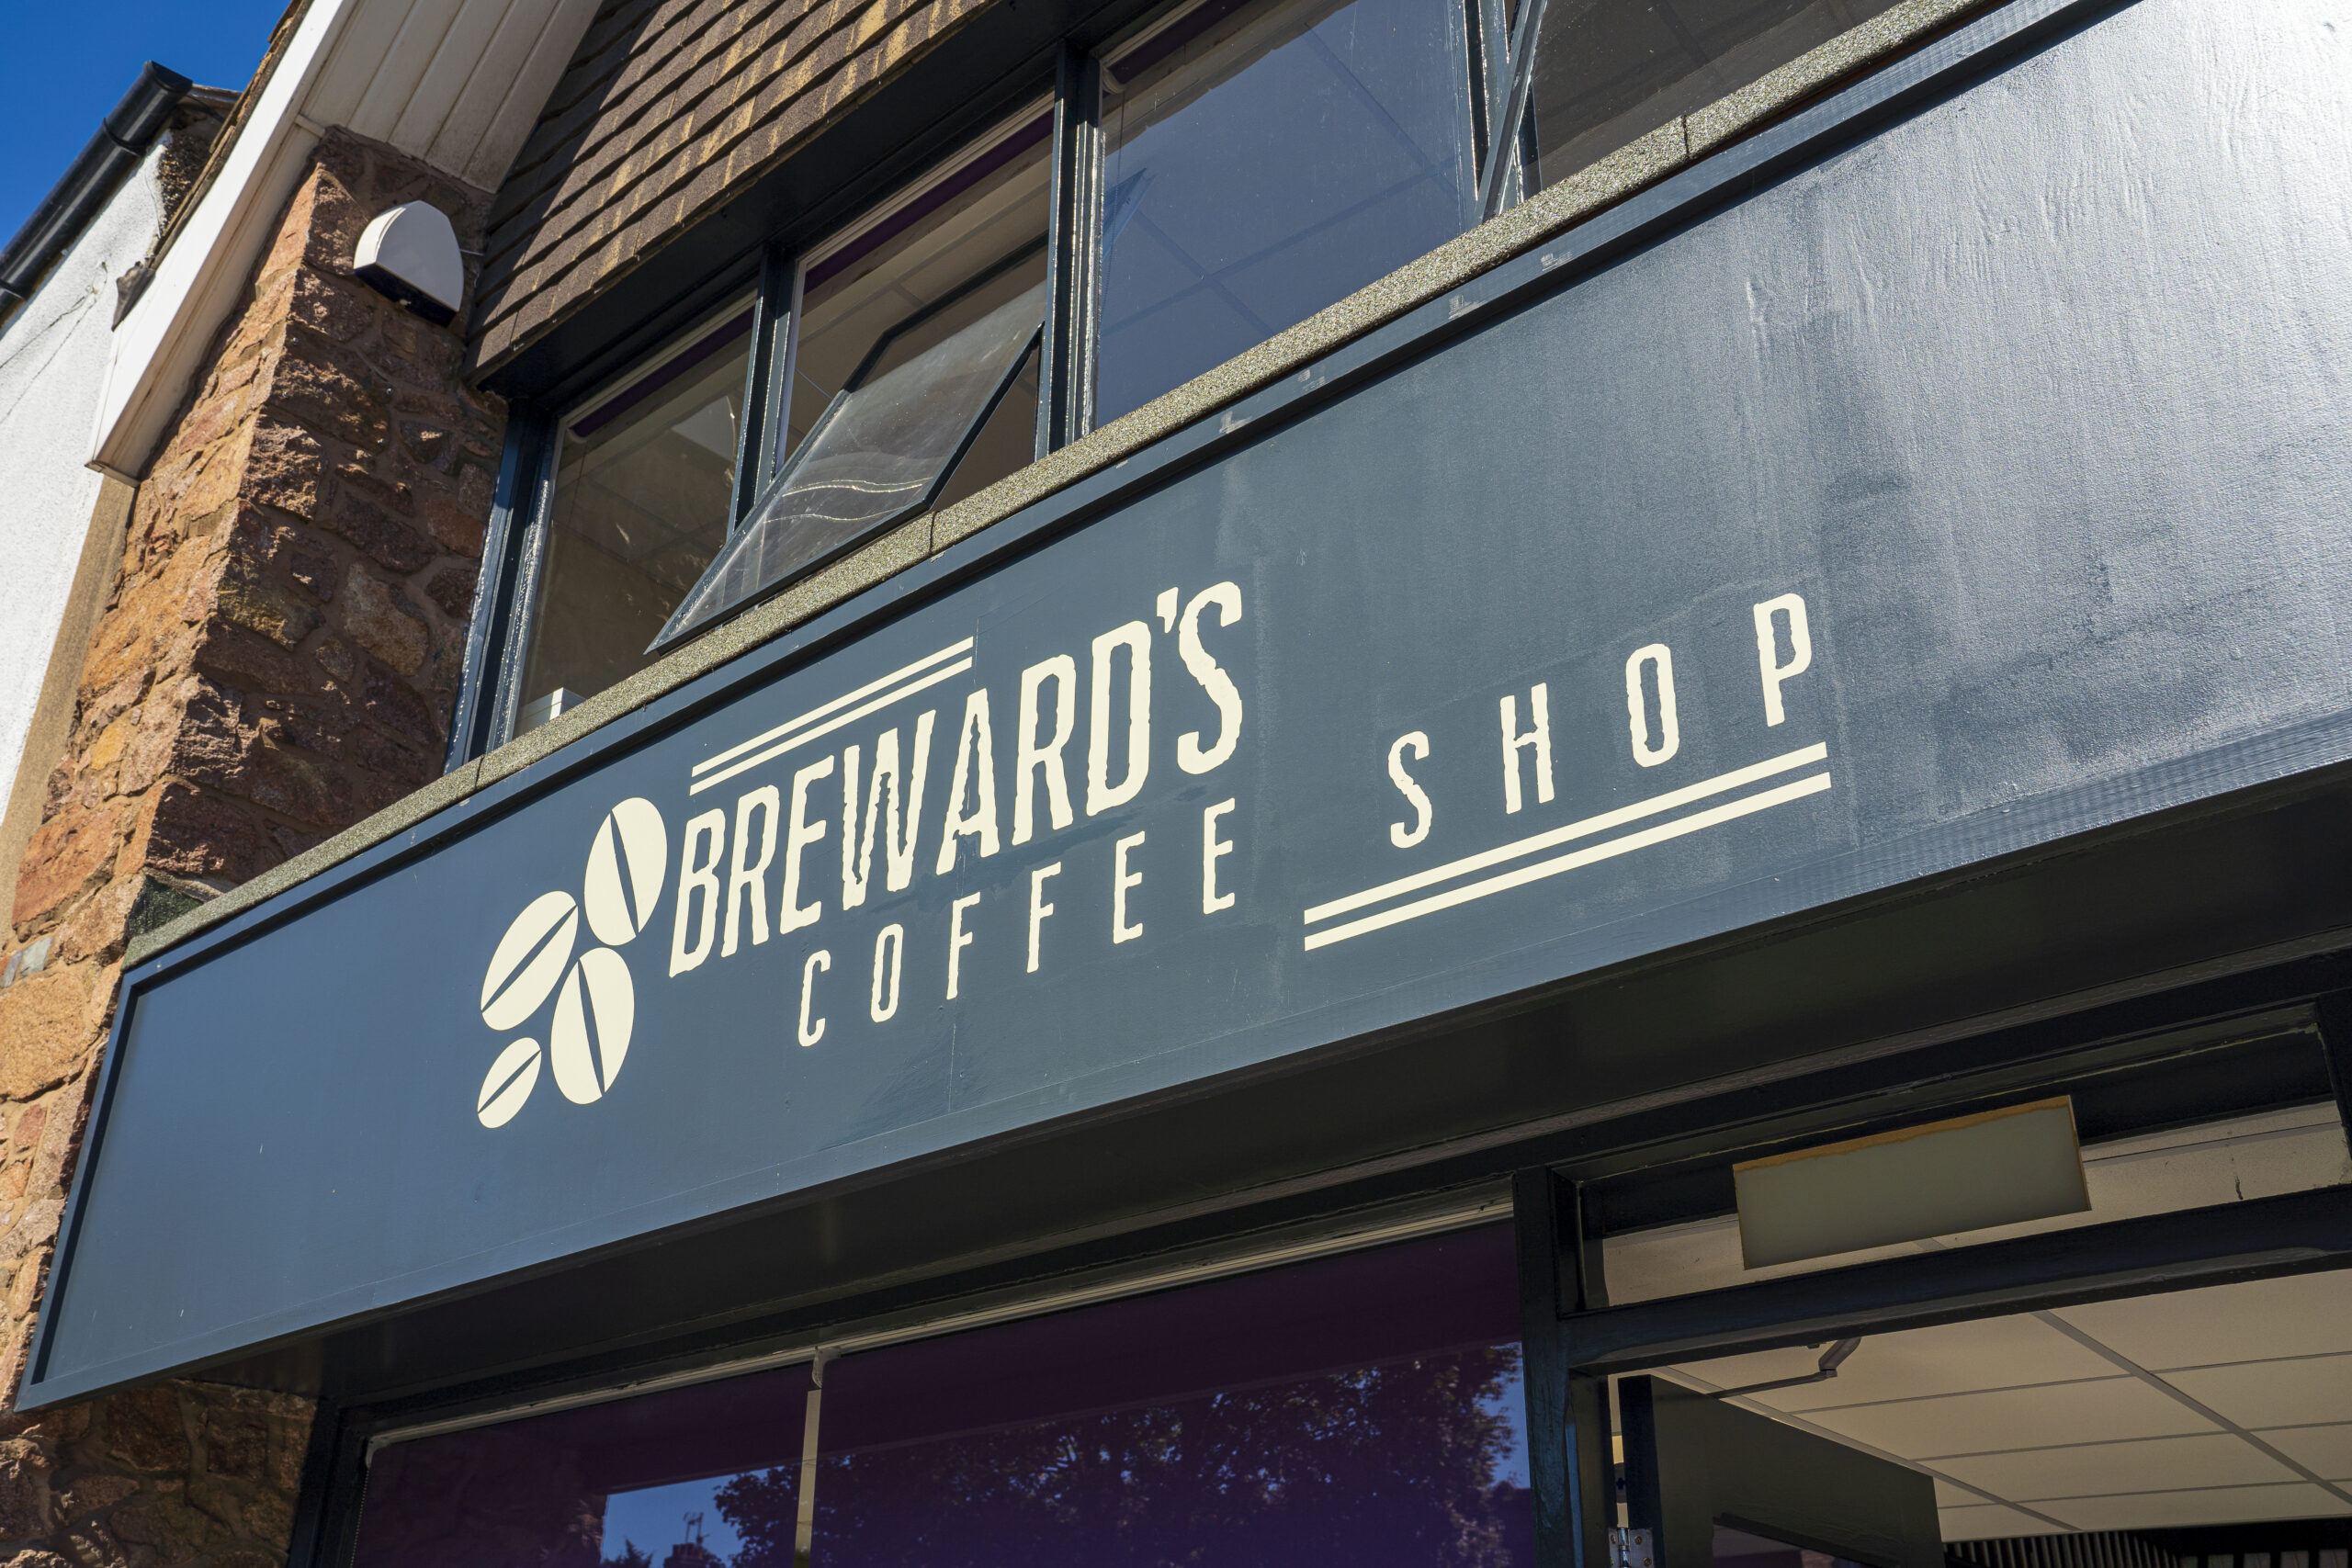 The front signage of Breward's, with the typography reading 'Breward's Coffee Shop' in white on a black background